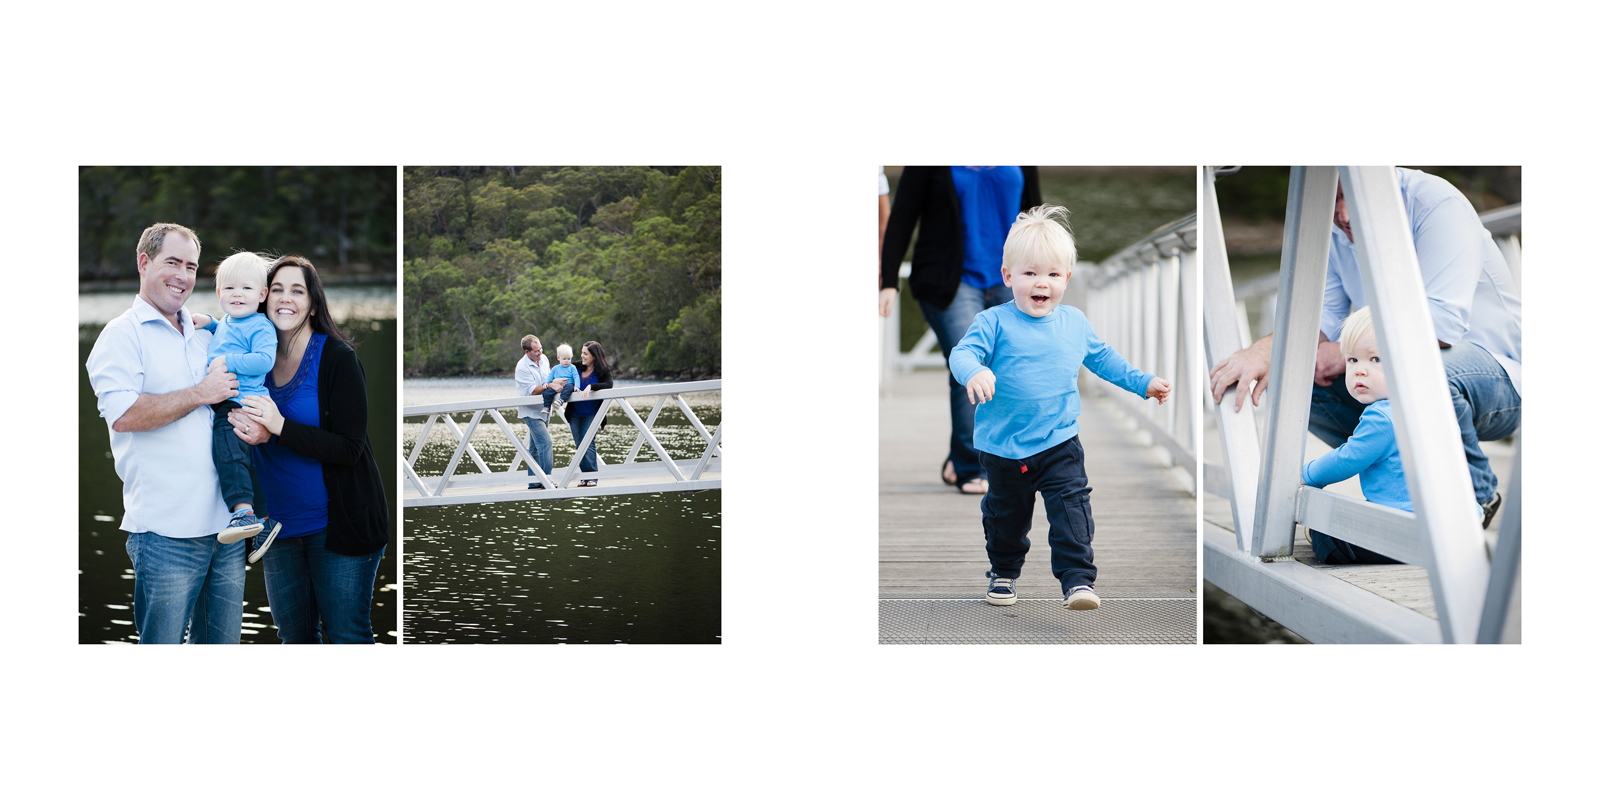 beautiful-image-of-baby-and-family-on-north-shore-sydney-by-little-love-photography